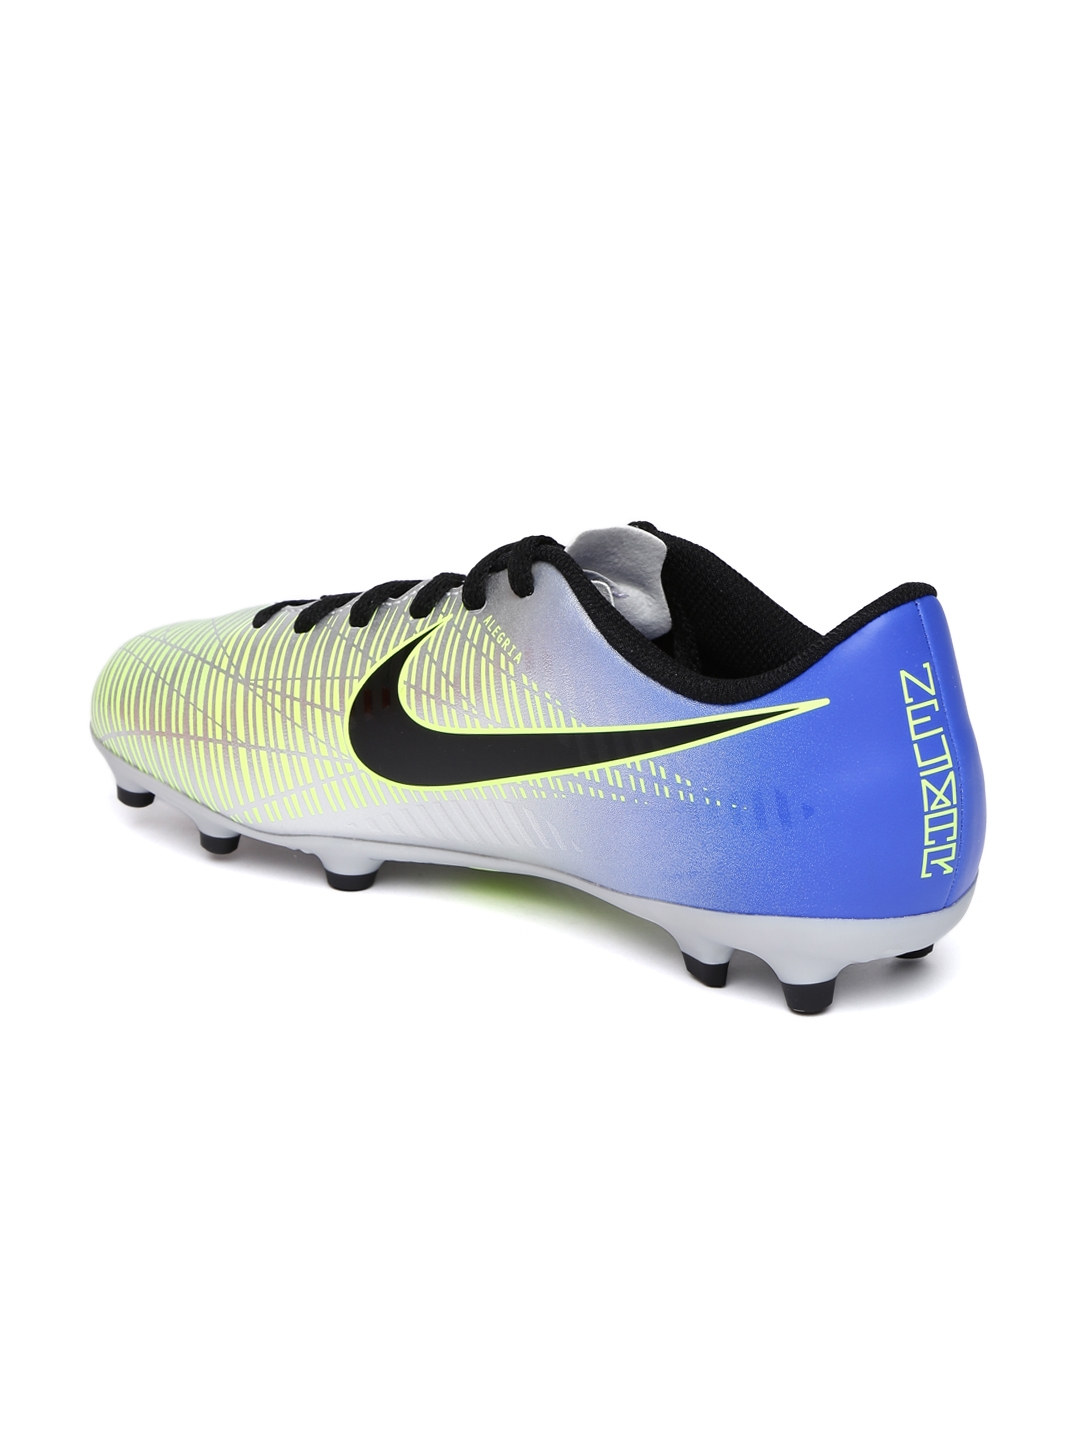 cf20107233 Nike Kids Silver-Toned MERCURIAL VORTEX III neymar firm ground Football  Shoes